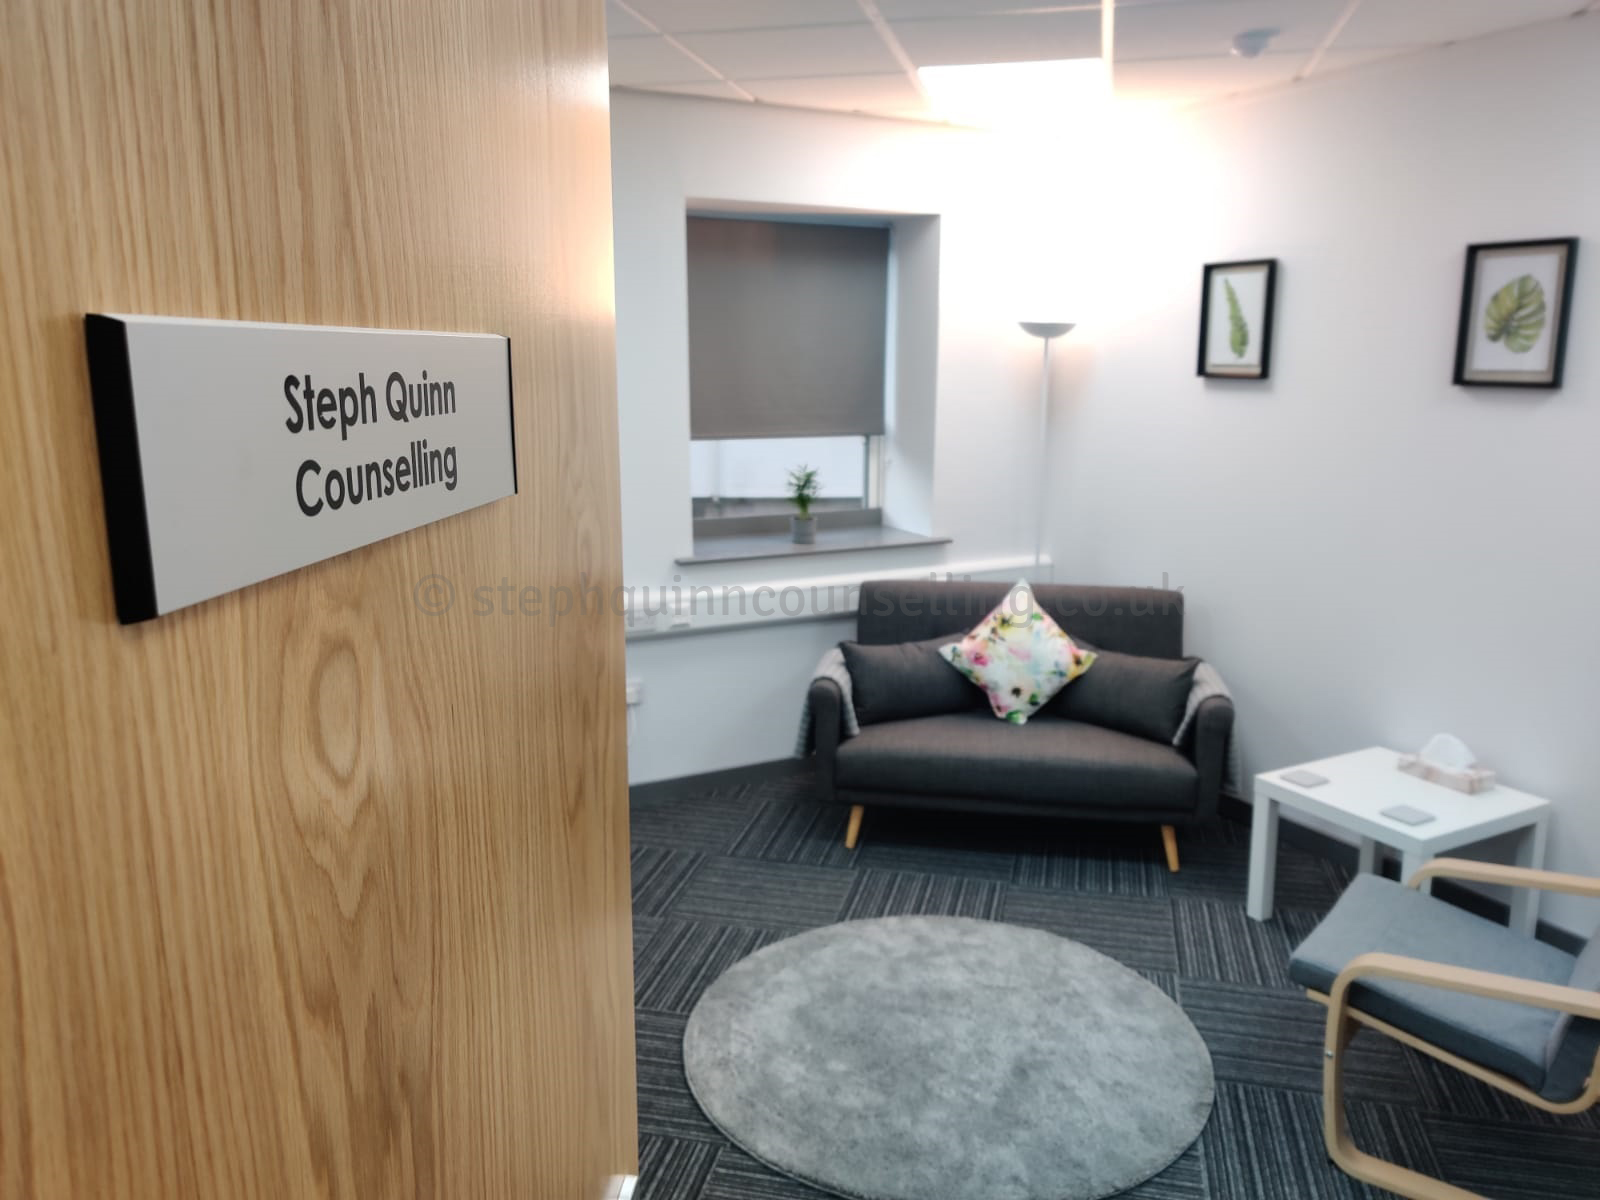 view into counselling room